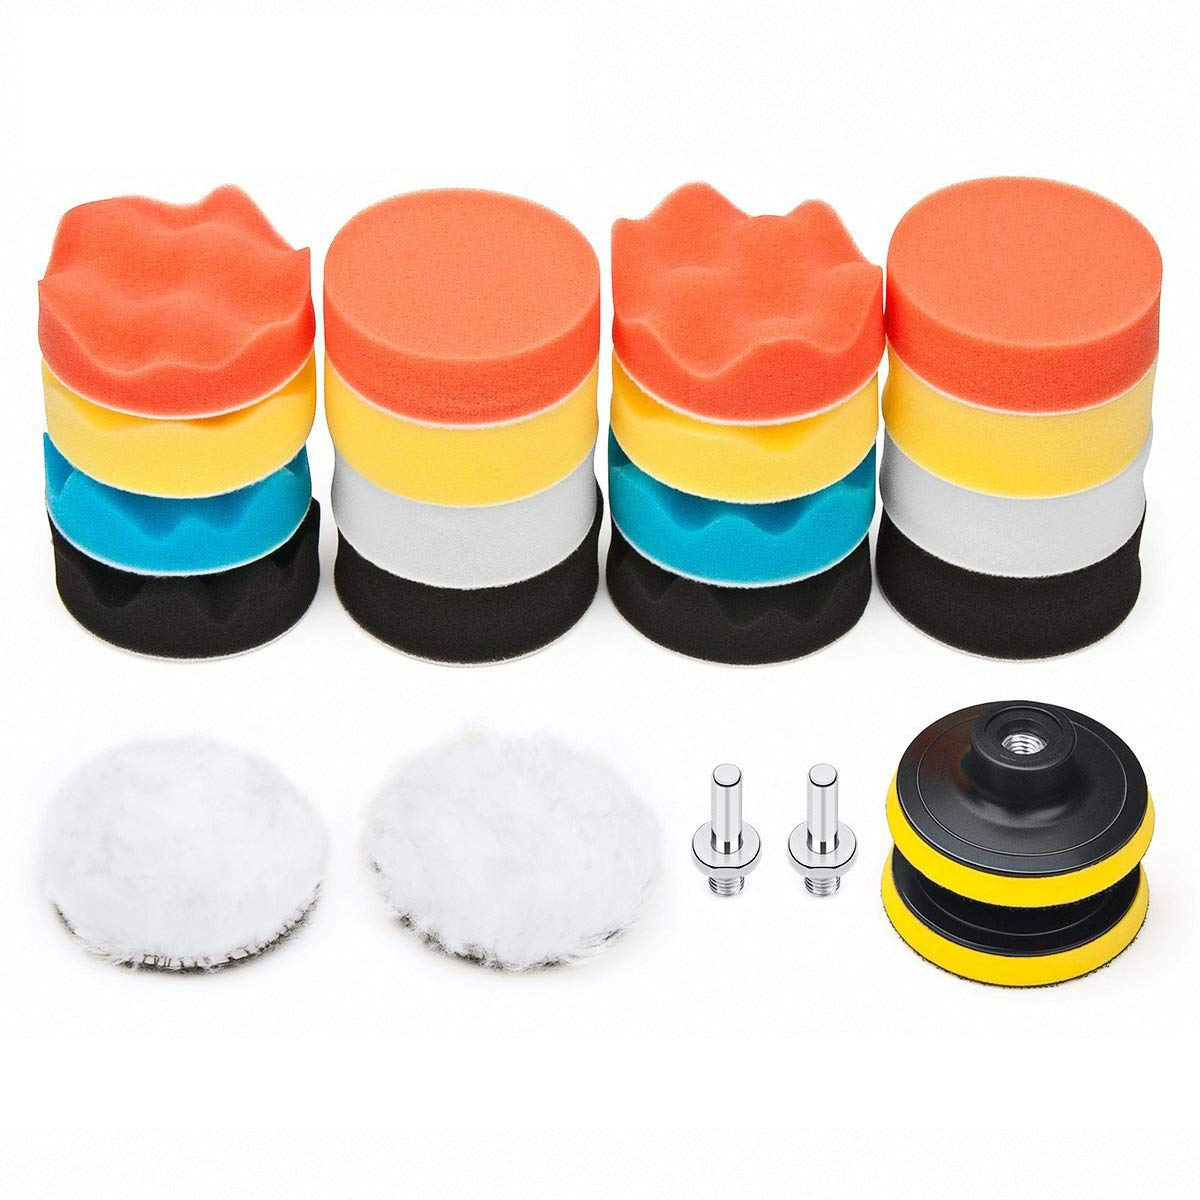 Car Foam Drill Polishing Pad Kit 22 PCS, 3 Inch Buffing Pads by Petutu